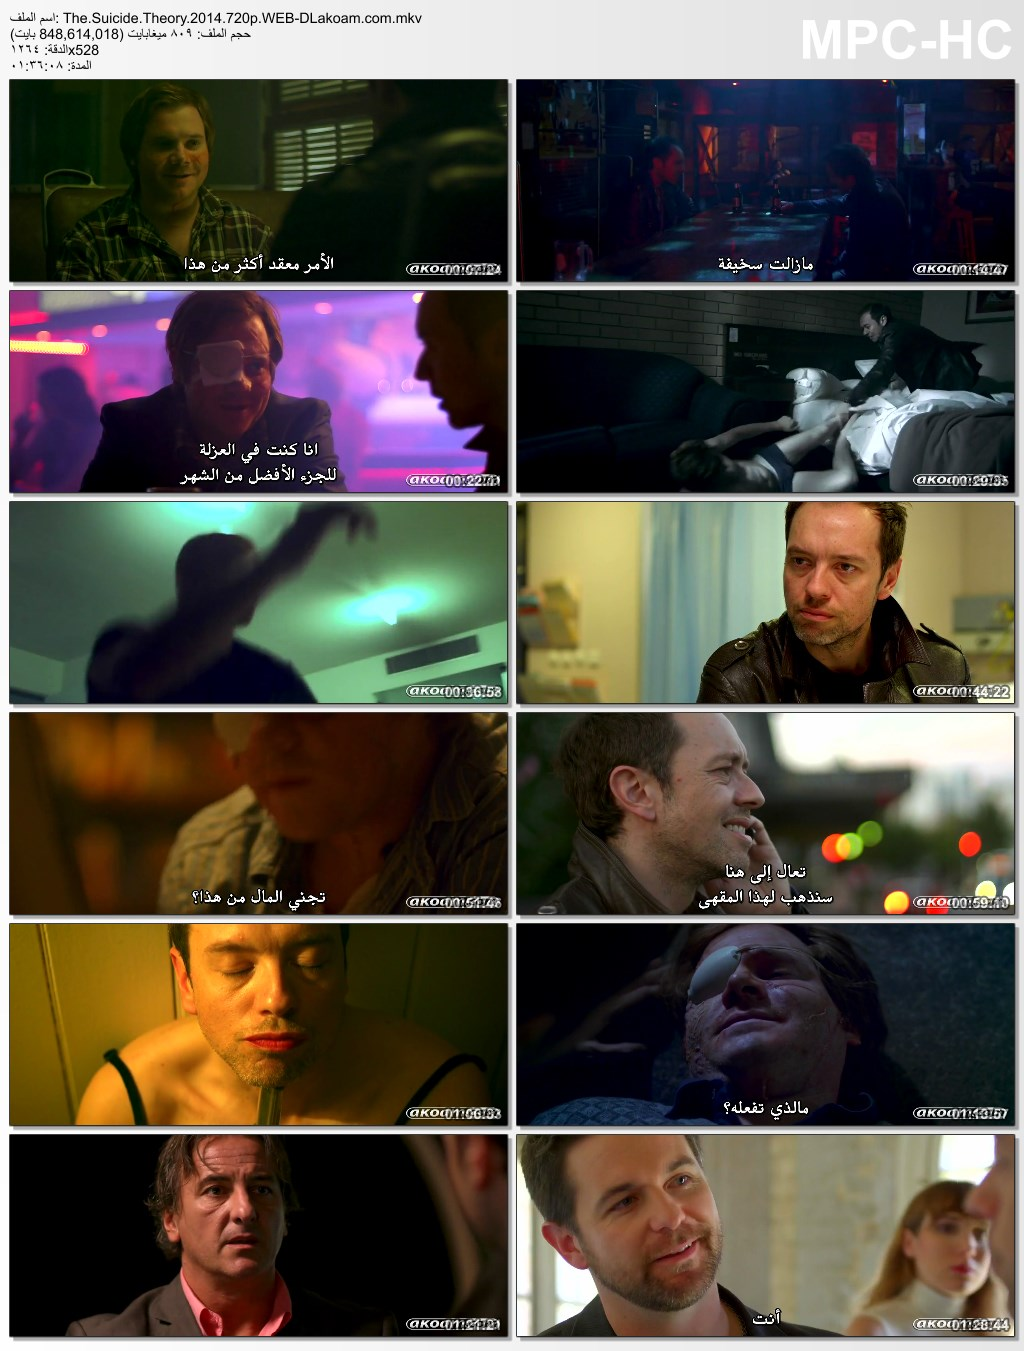 The Suicide Theory,The Suicide Theory  2015,الدراما,الغموض,The Suicide Theory 2014